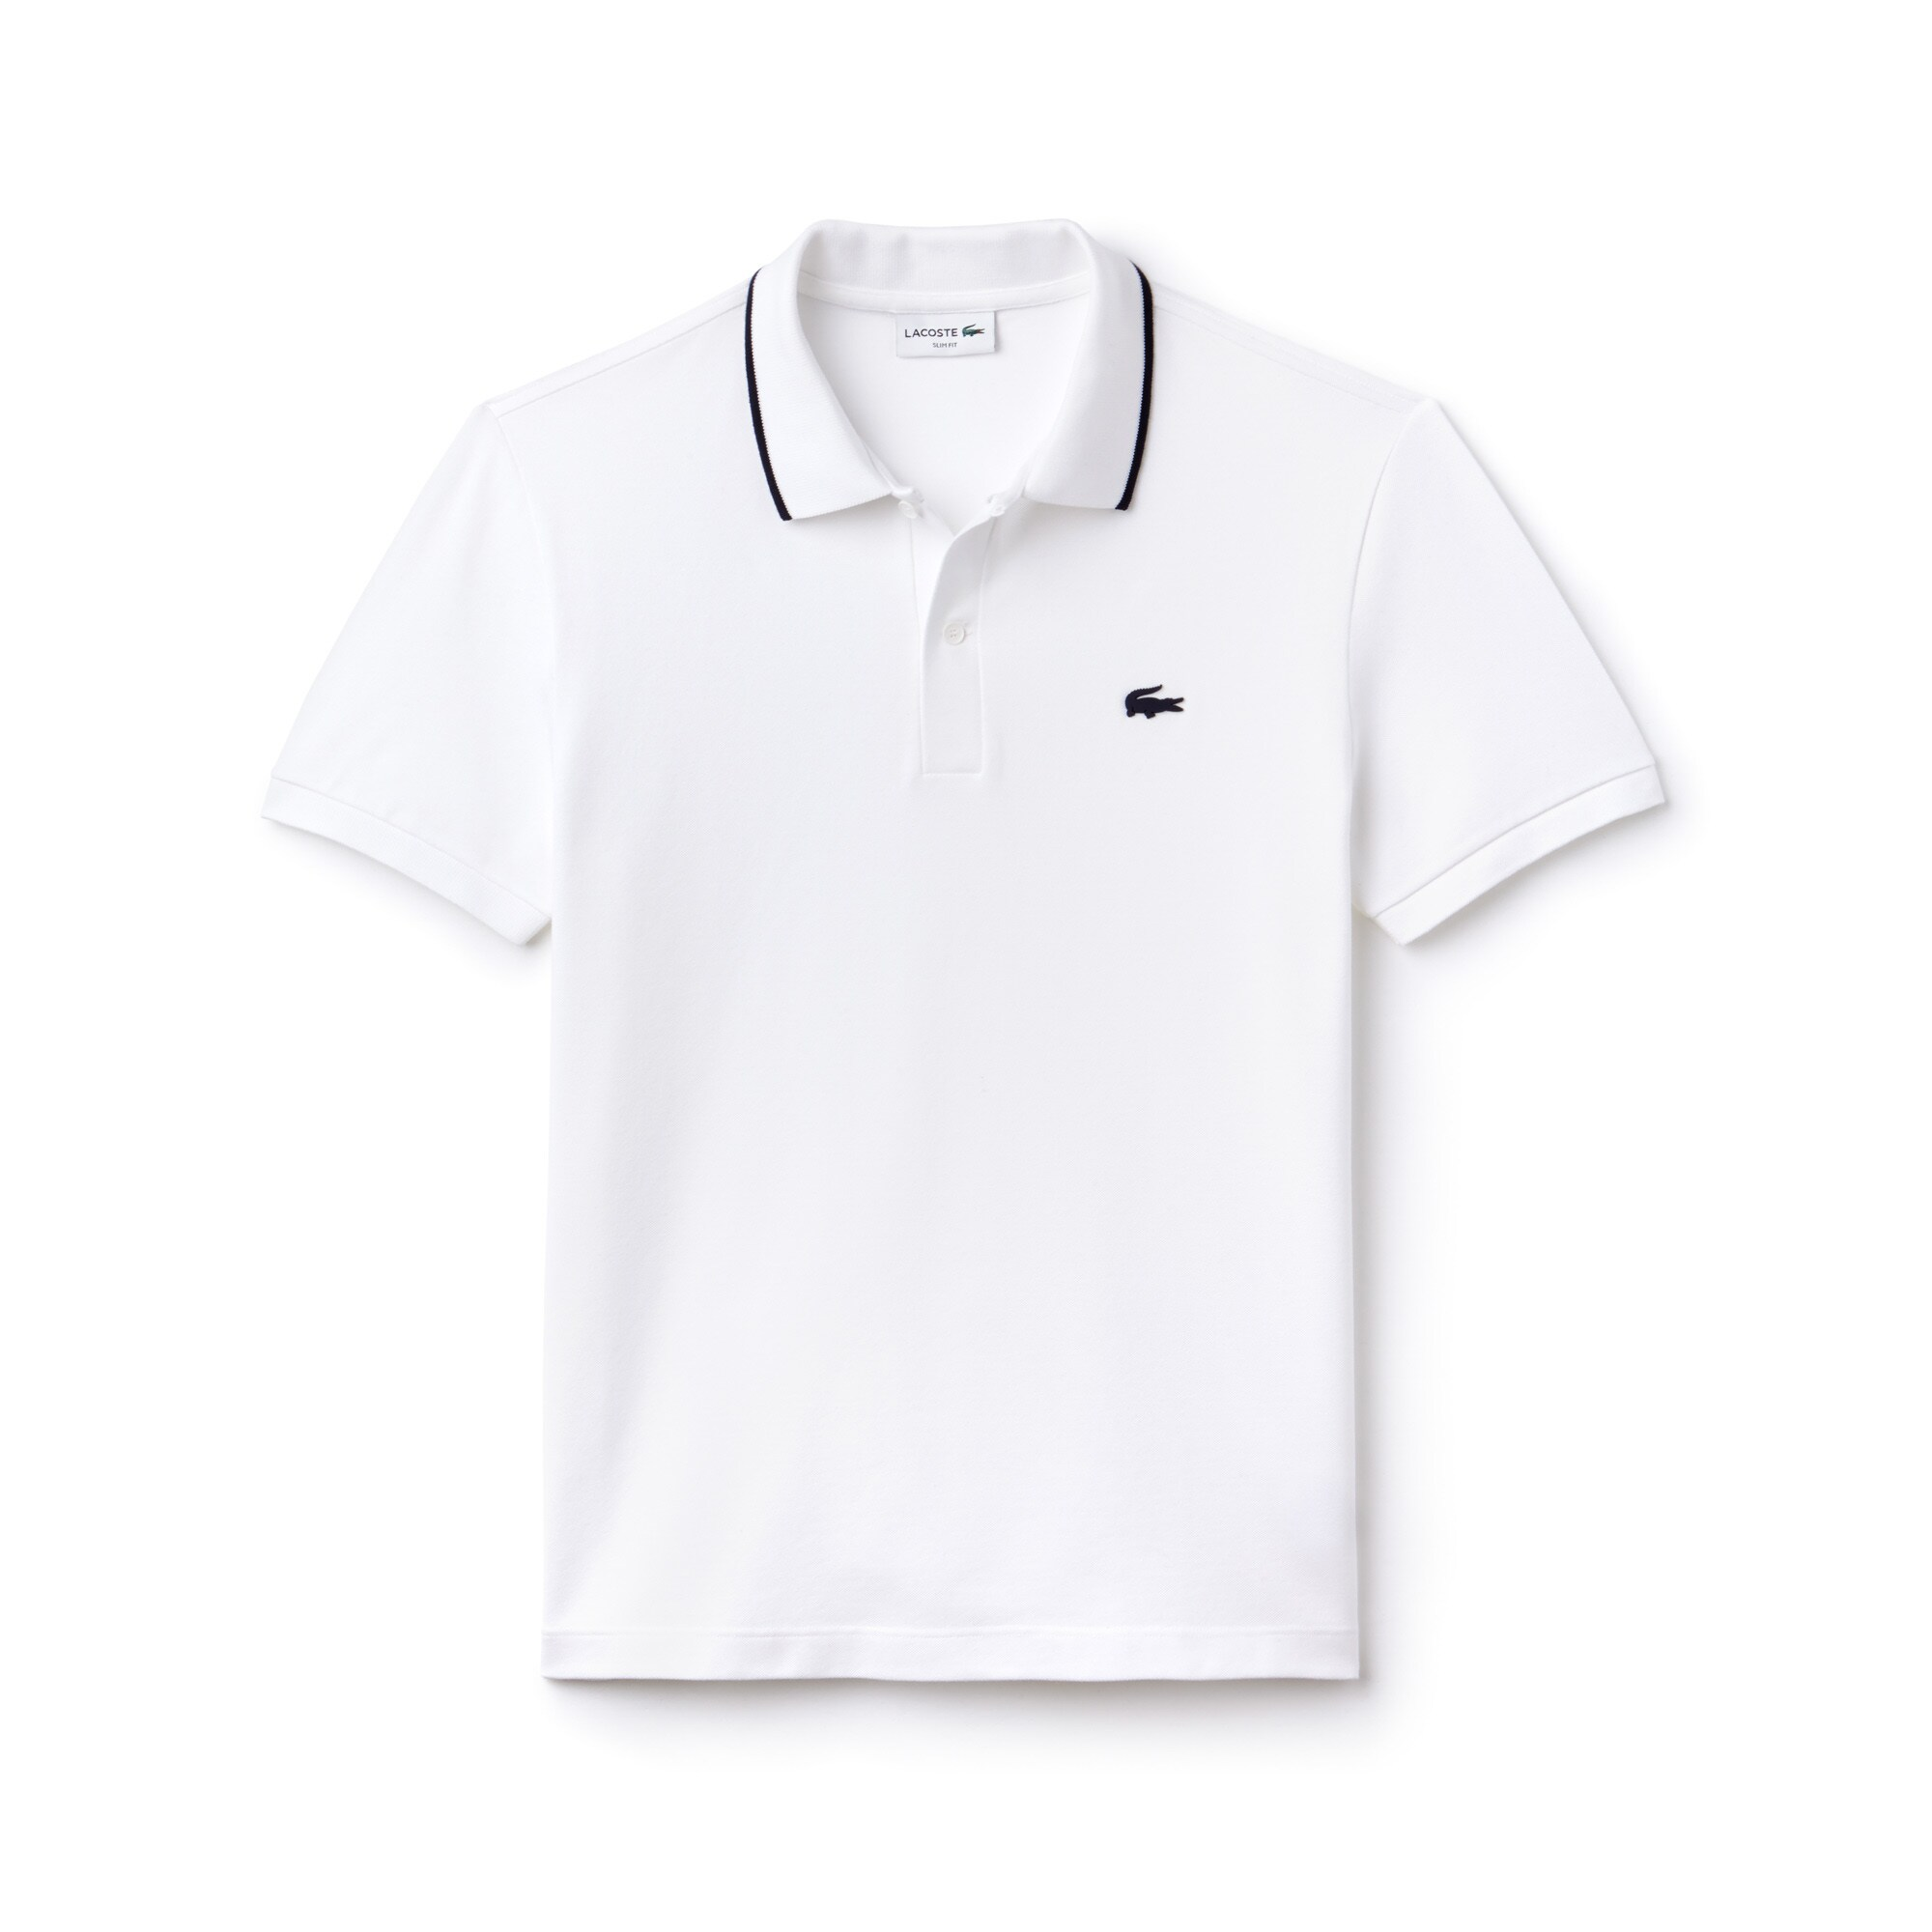 Men's Lacoste Slim Fit Piped Neck Stretch Pima Cotton Polo Shirt